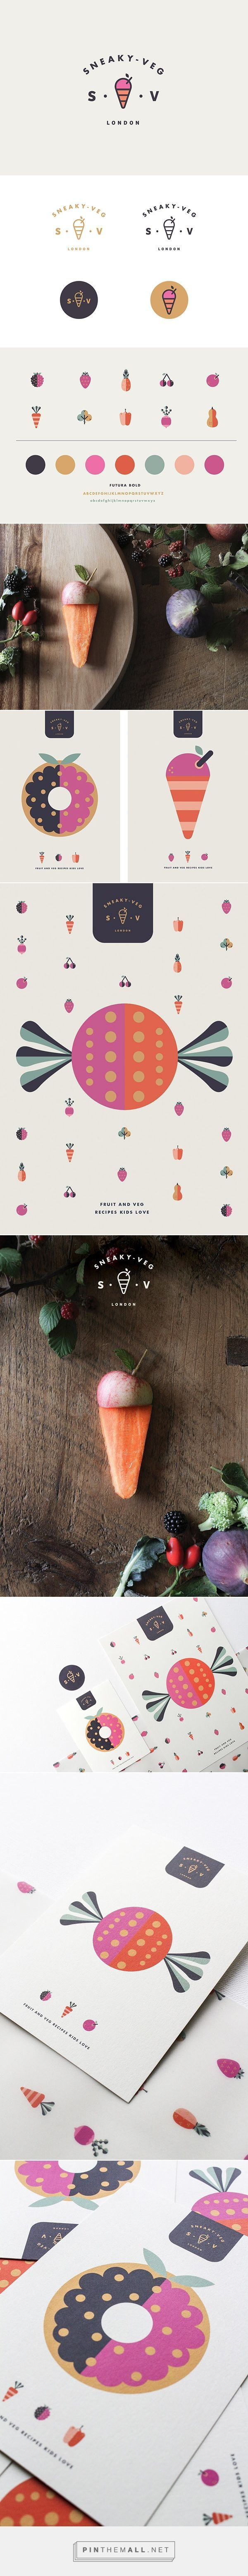 Such a great brand identity. Cute and clean. I like the use of flat elements and icons throughout. Sneaky Veg Brand Identity.